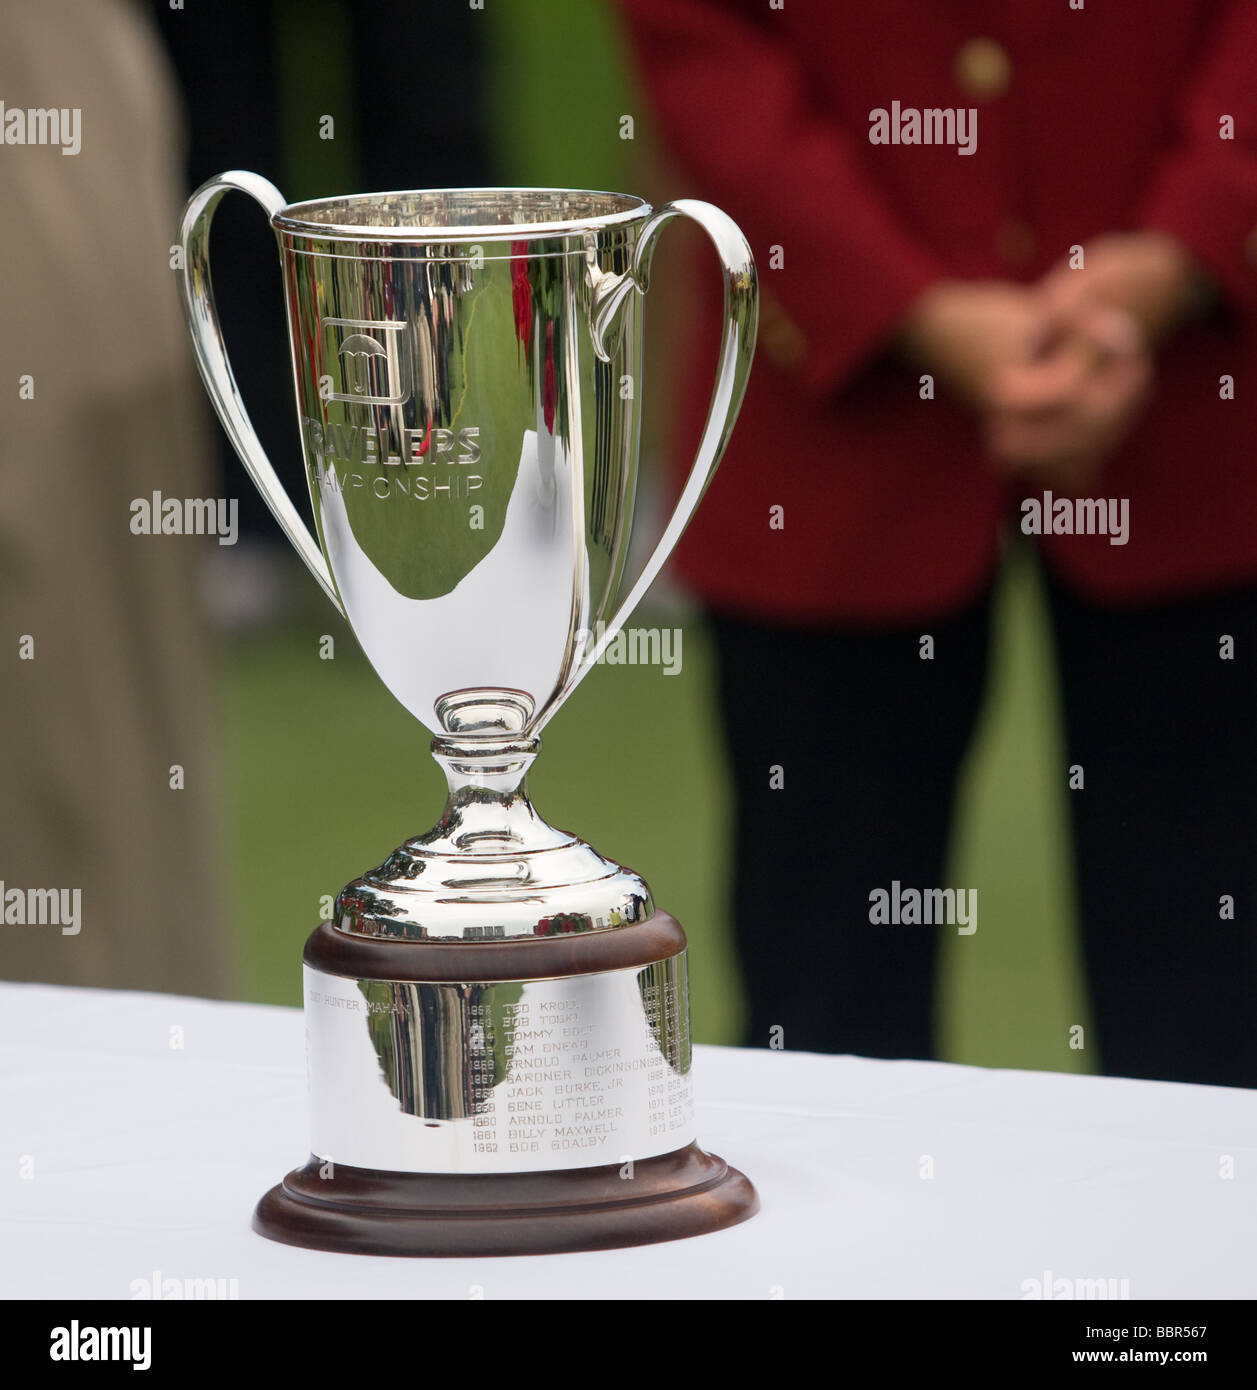 A PGA golf tournament winner's cup at the Travelers Championship, Cromwell CT USA 2009 - Stock Image